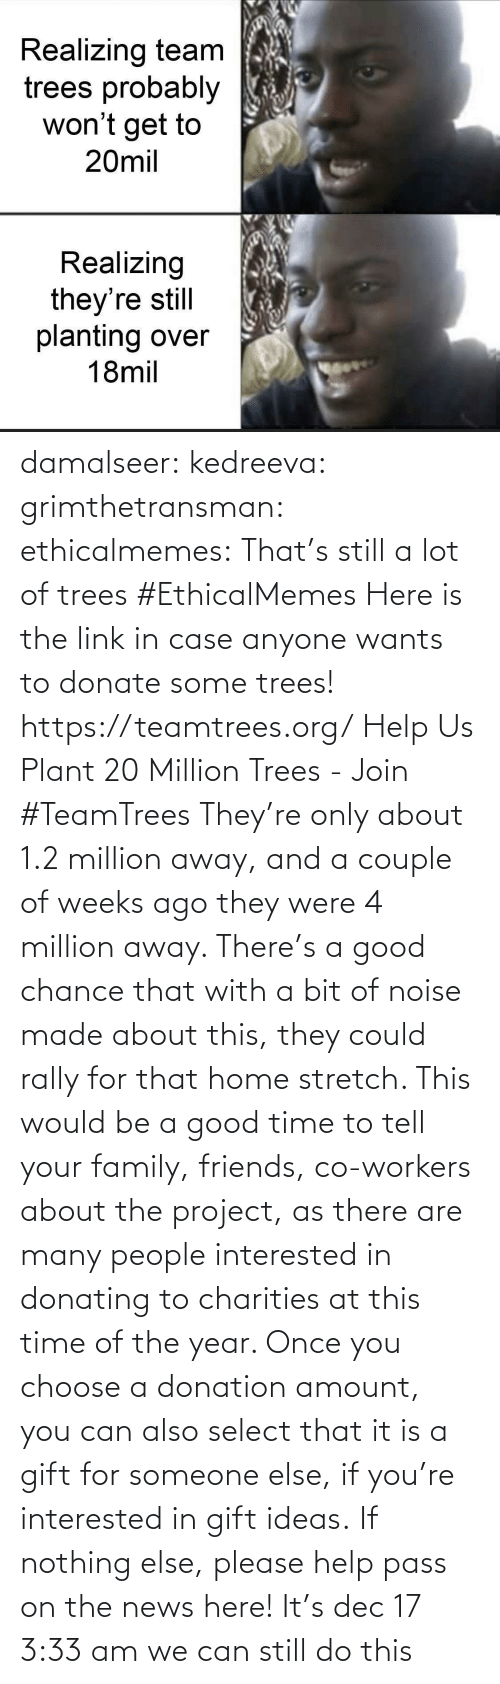 donate: Realizing team  trees probably  won't get to  20mil  Realizing  they're still  planting over  18mil damalseer:  kedreeva: grimthetransman:  ethicalmemes:  That's still a lot of trees #EthicalMemes   Here is the link in case anyone wants to donate some trees!  https://teamtrees.org/ Help Us Plant 20 Million Trees - Join #TeamTrees  They're only about 1.2 million away, and a couple of weeks ago they were 4 million away. There's a good chance that with a bit of noise made about this, they could rally for that home stretch. This would be a good time to tell your family, friends, co-workers about the project, as there are many people interested in donating to charities at this time of the year. Once you choose a donation amount, you can also select that it is a gift for someone else, if you're interested in gift ideas. If nothing else, please help pass on the news here!    It's dec 17 3:33 am we can still do this